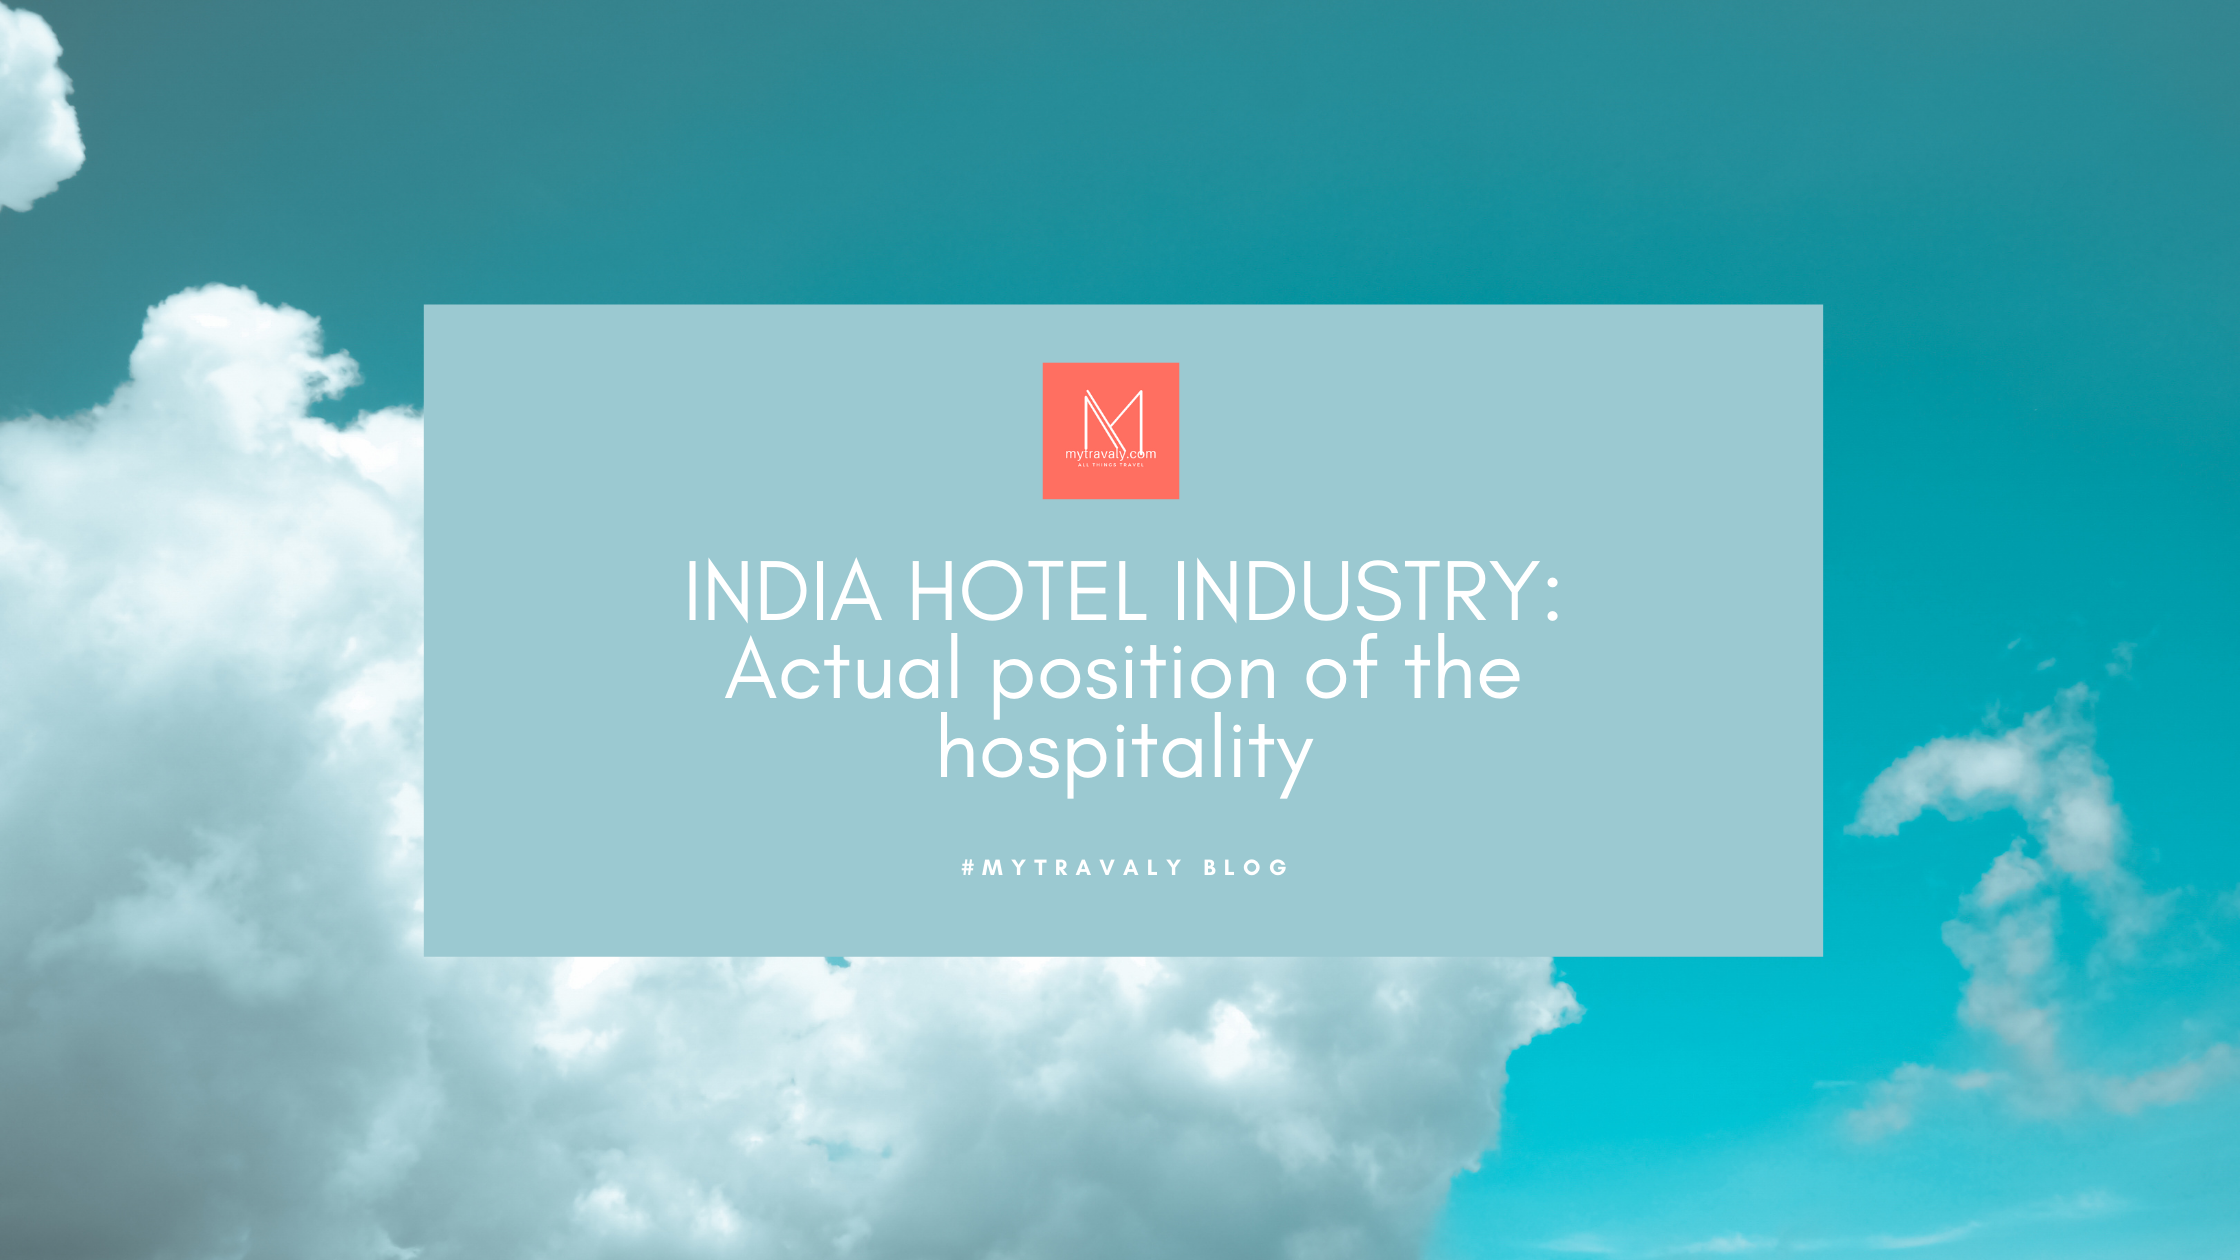 India hotel industry: Actual position of the hospitality sector